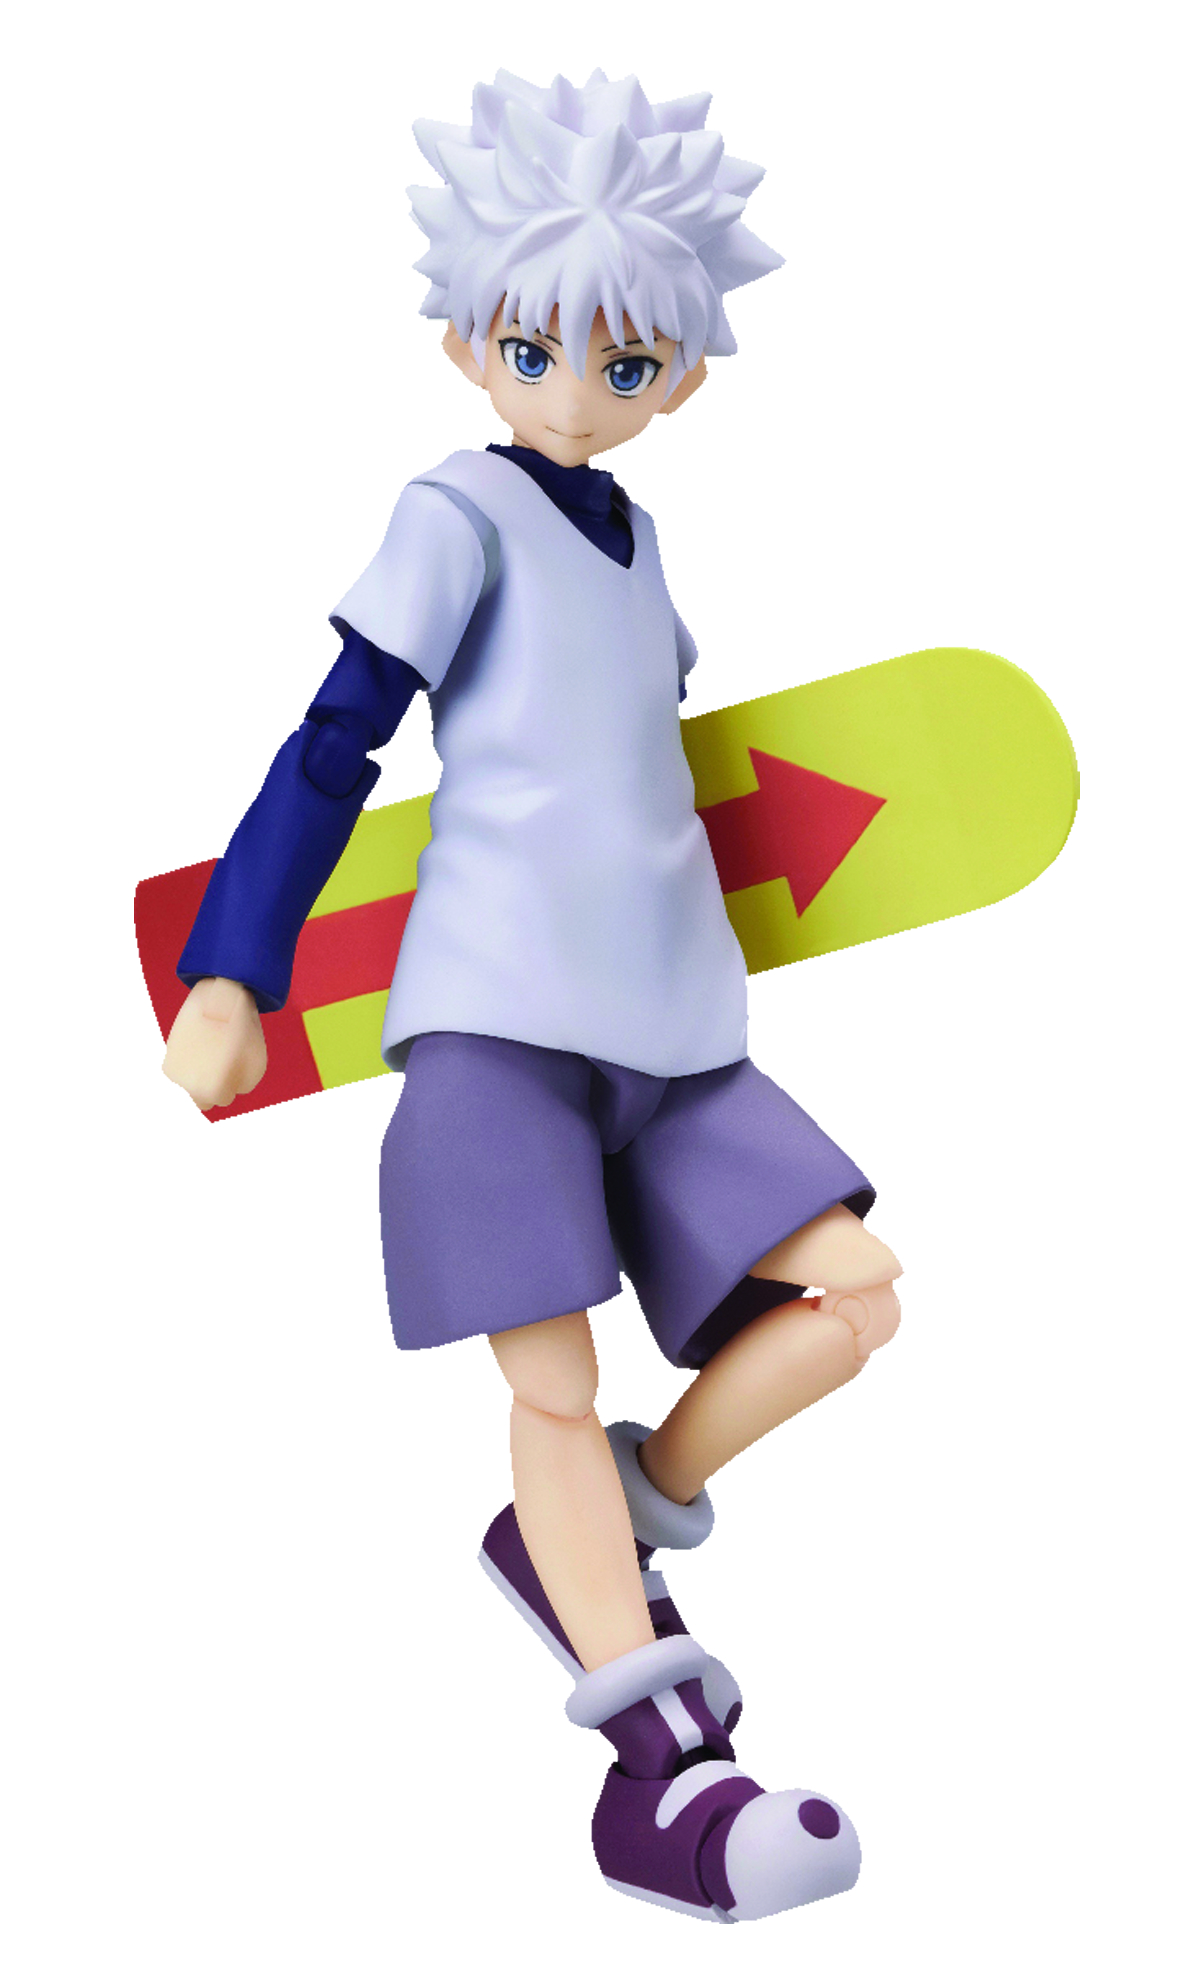 HUNTER X HUNTER KILLUA ZAOLDYECK FIGMA